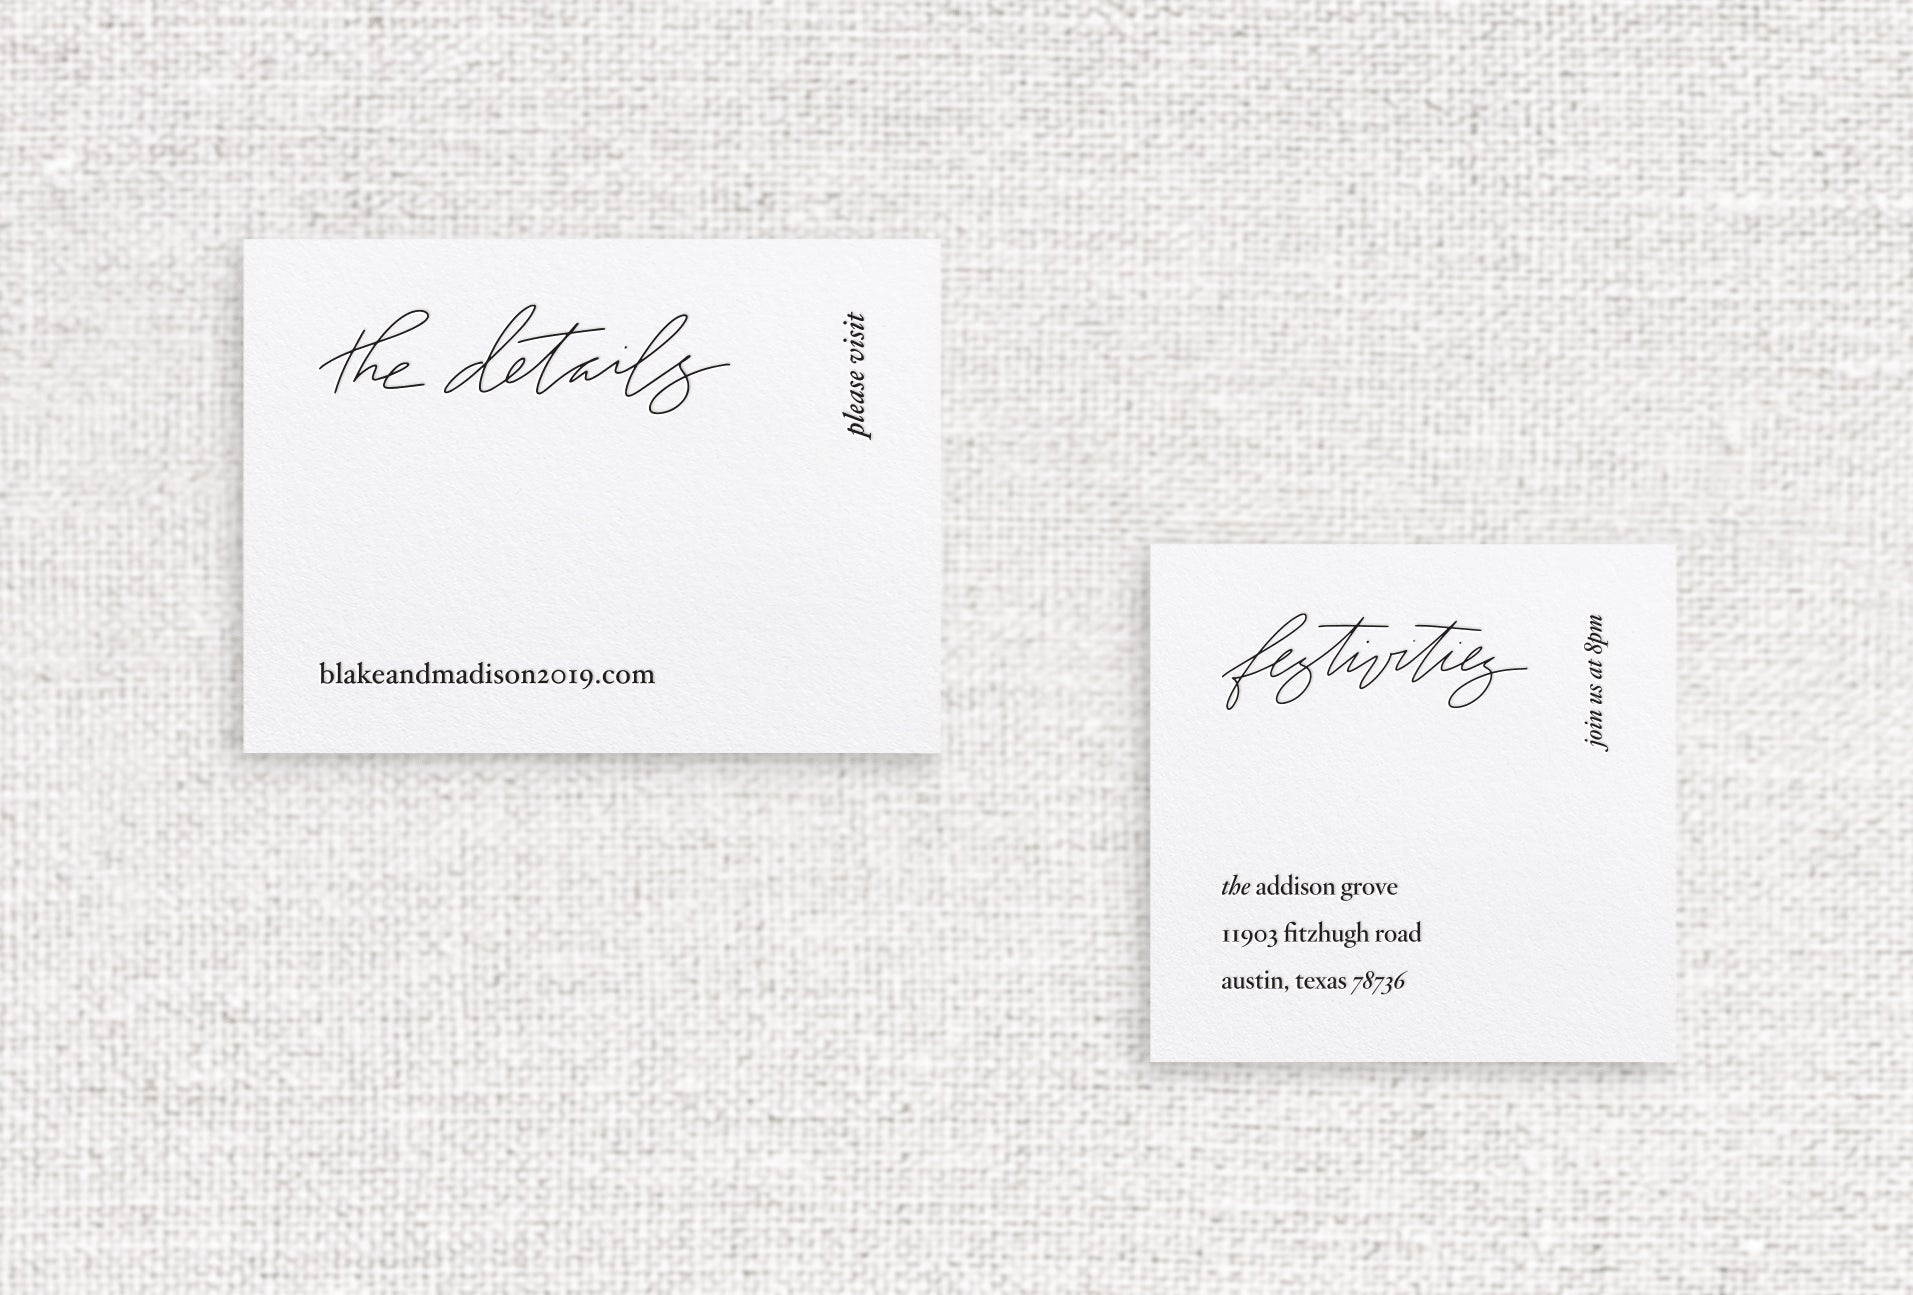 Blake web or reception card letterpressed in night ink on white stock